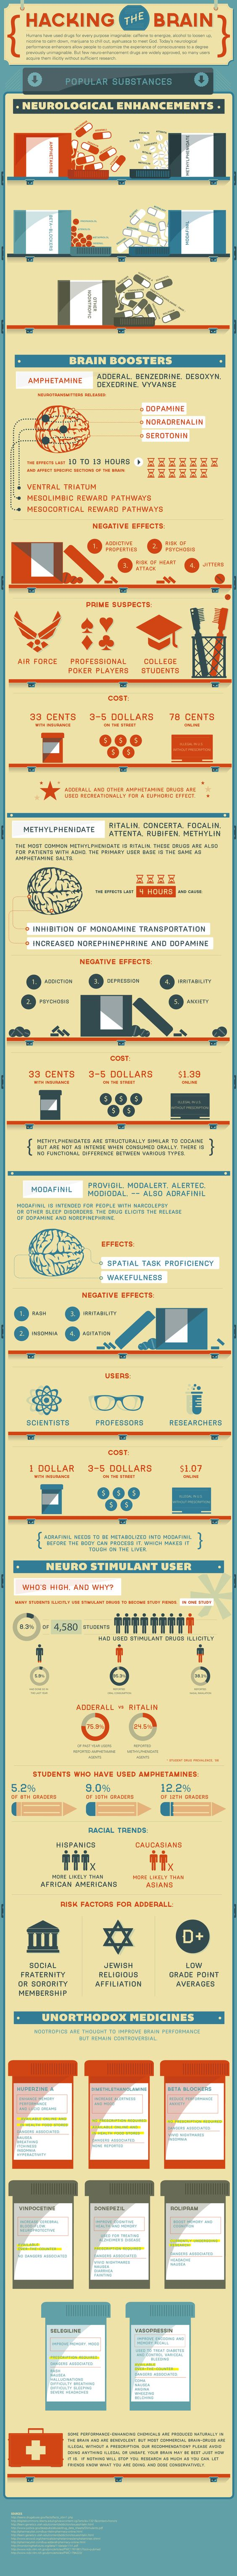 THE BRAIN -       This infographic details the most commonly used neurological enhancements and the user demographics at risk for abuse.